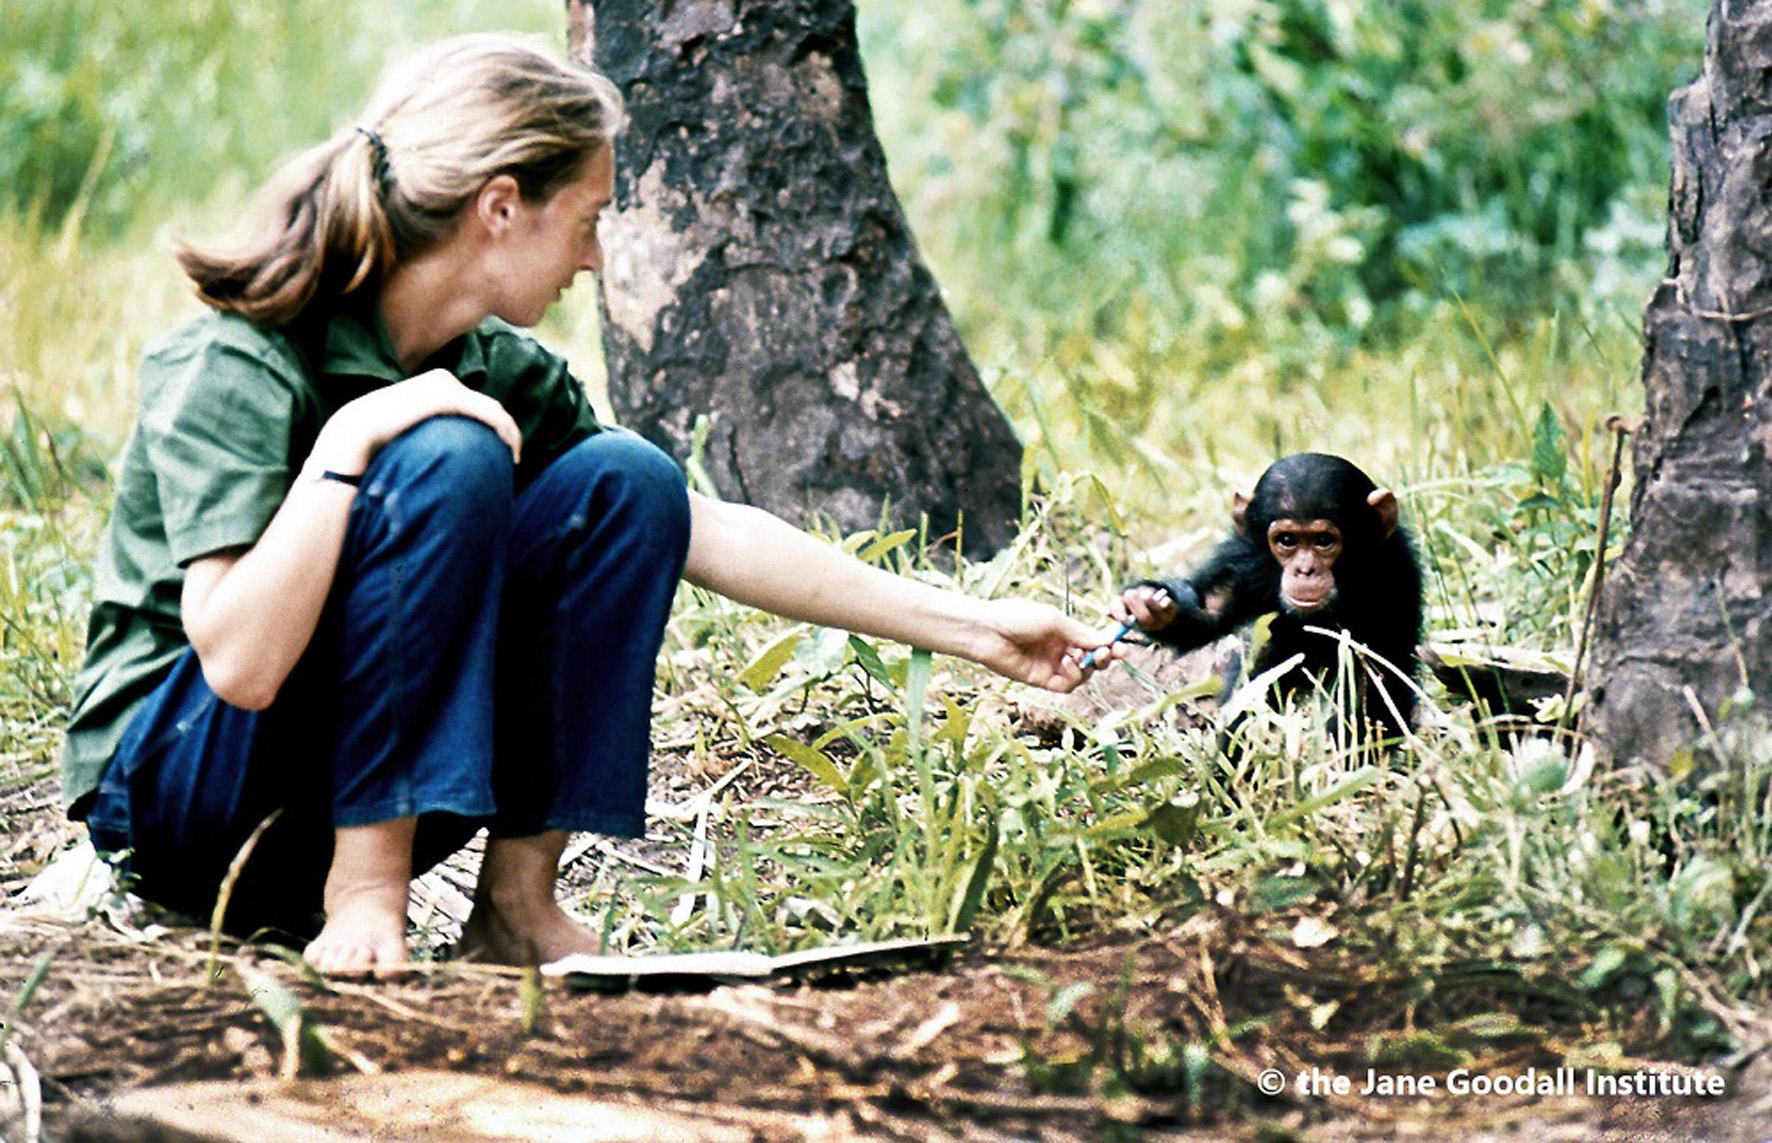 Jane Goodall in Gombe © Τhe Jane Goodall Institute by Hugo Van Lawick